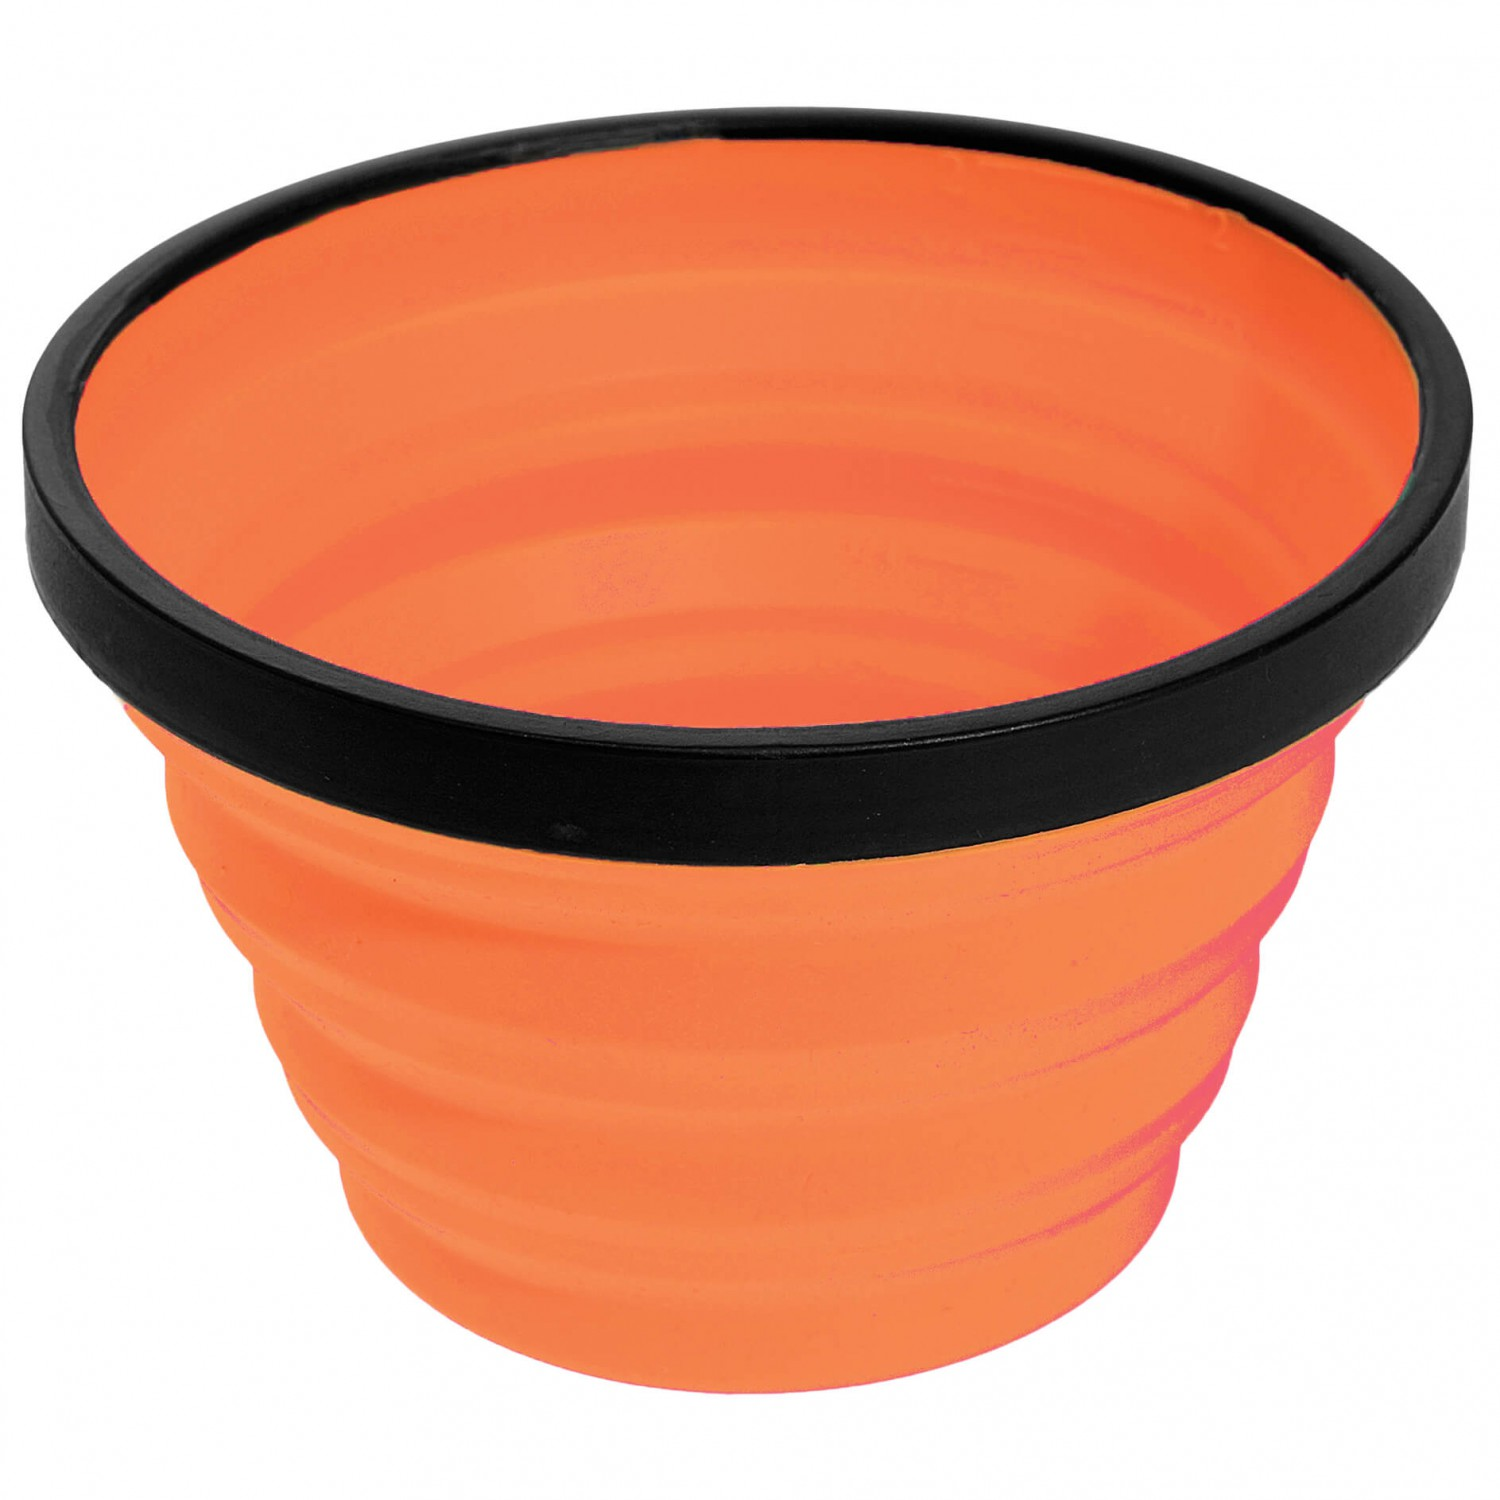 sea to summit x mug collapsible cup buy online. Black Bedroom Furniture Sets. Home Design Ideas